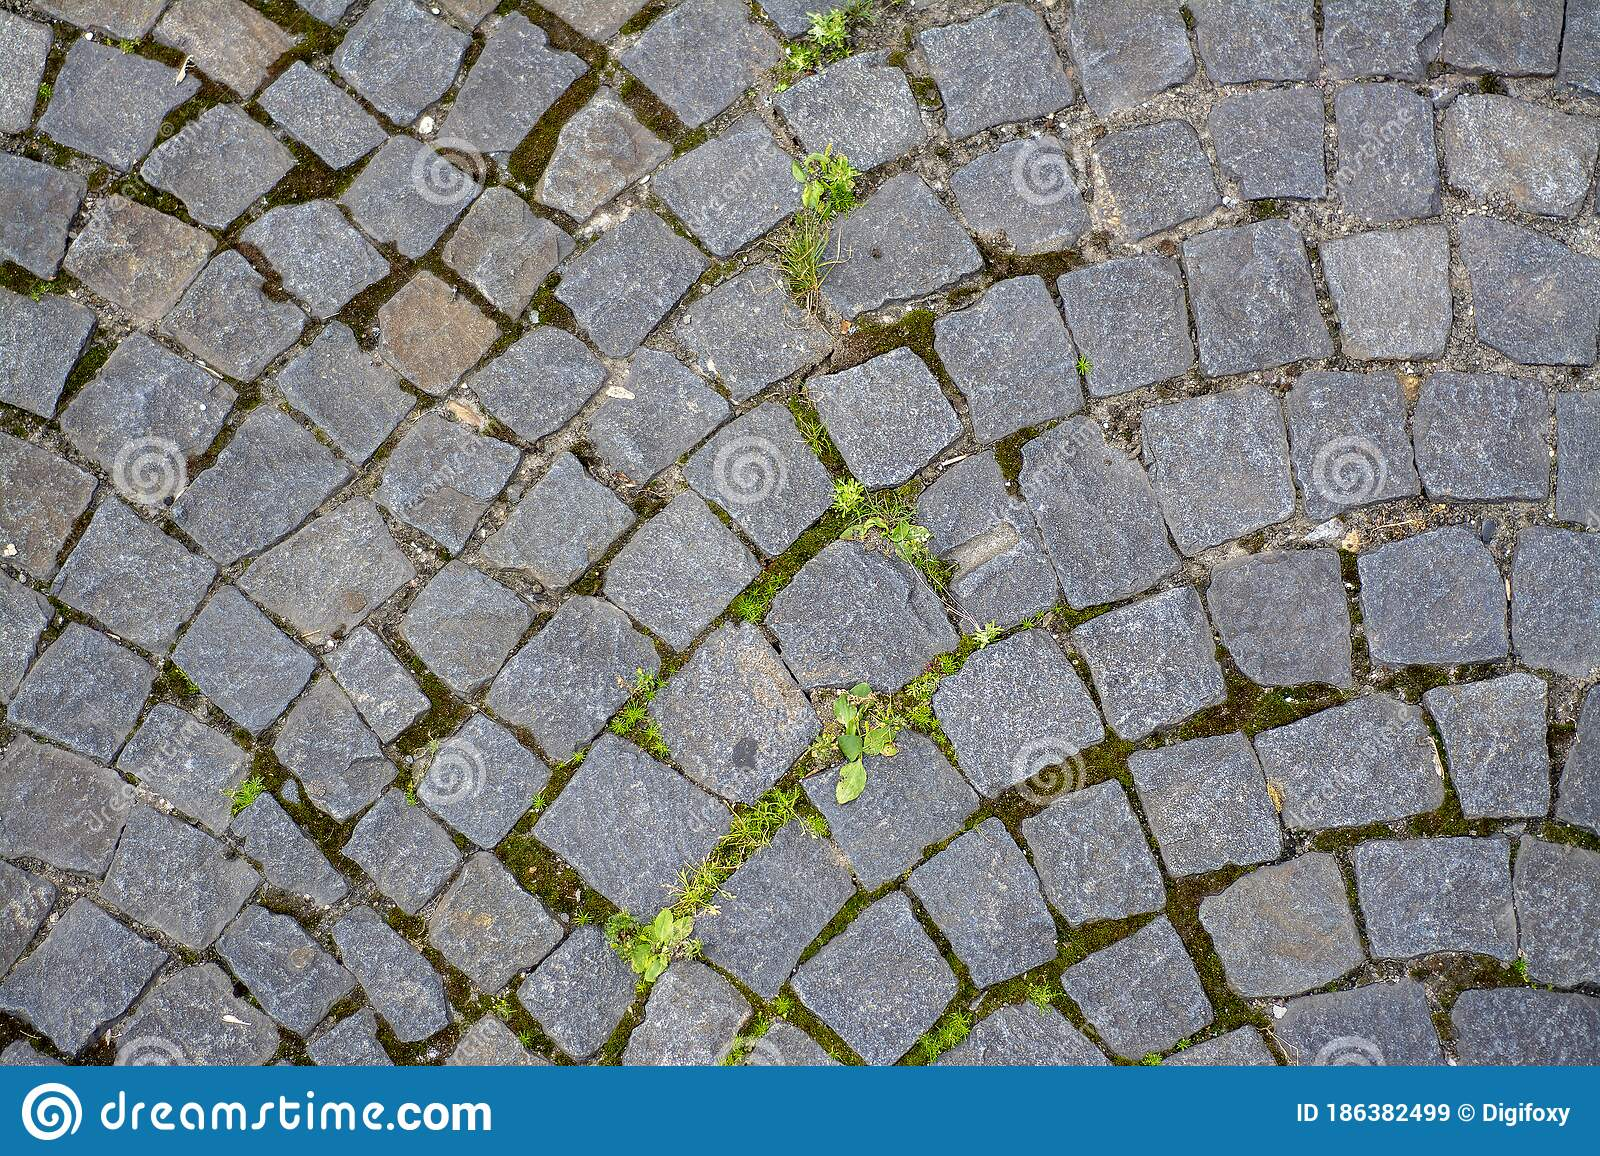 Old Pavement Of Paving Stones Stock Image Image Of Grass Street 186382499